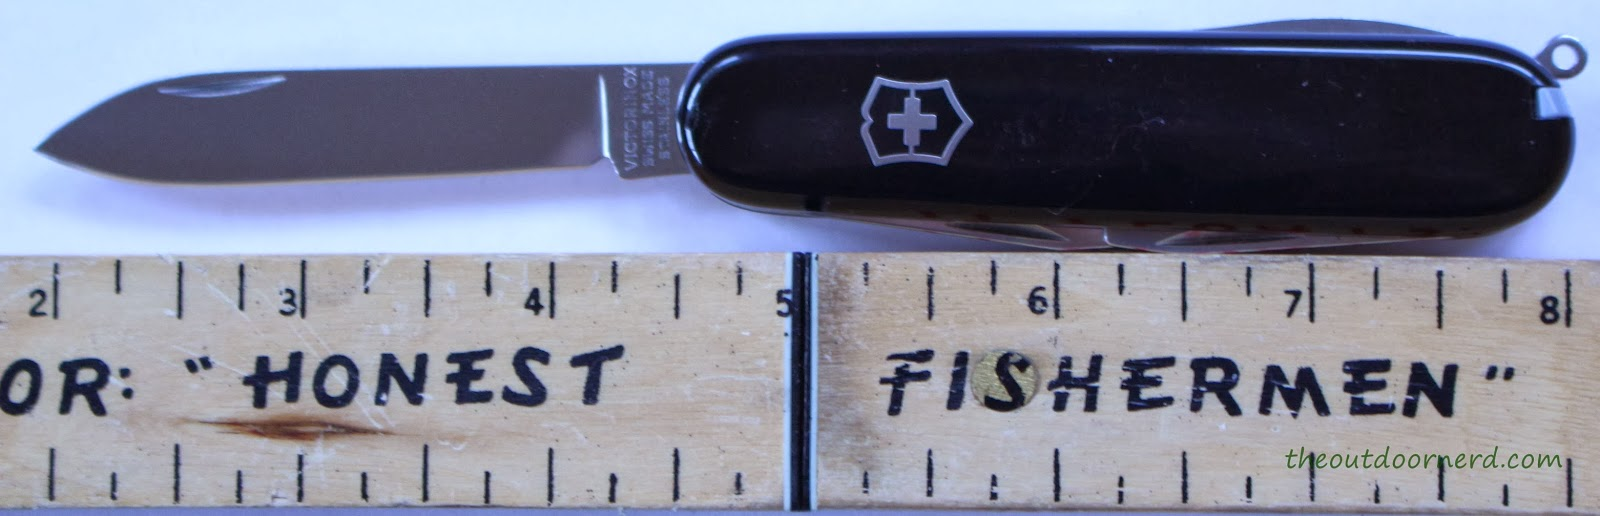 Victorinox Swiss Army Tinker Pocket Knife - Closeup Next To Ruler